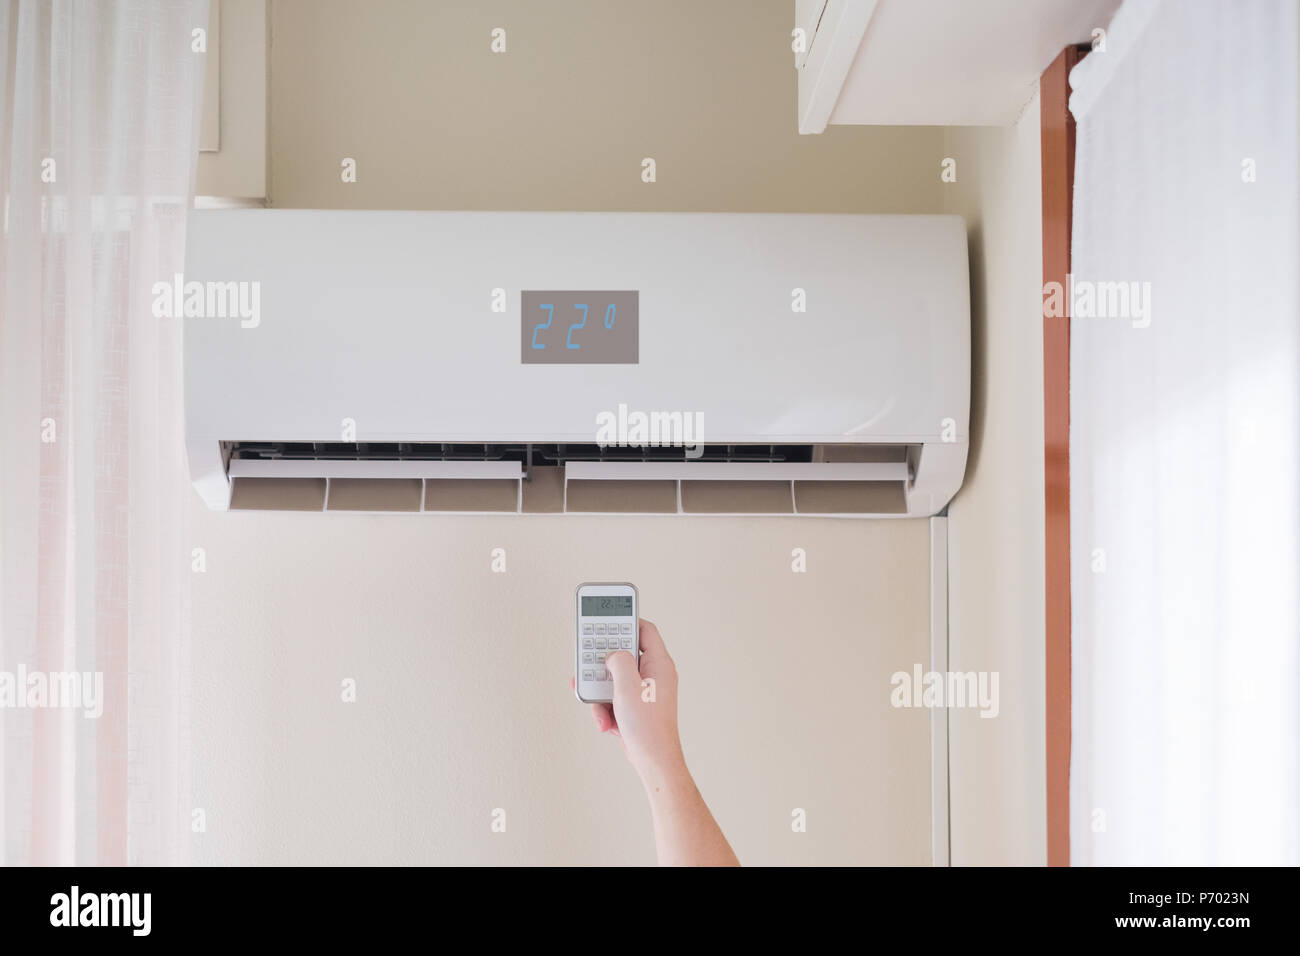 Air conditioner mounted on the room wall and temperature remote control - Stock Image